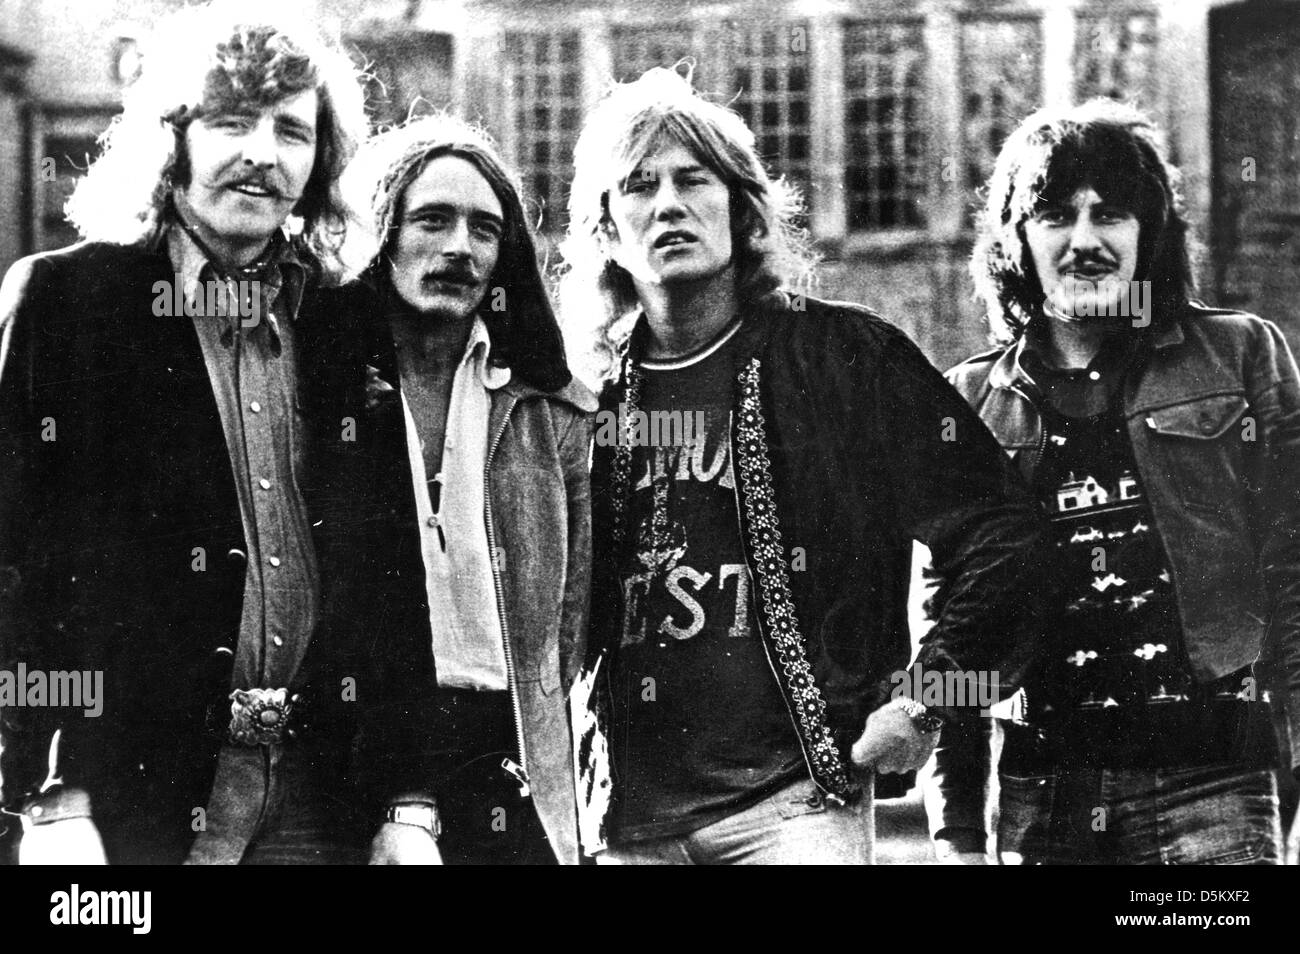 TEN YEARS AFTER Promotional photo of UK Blues-Rock group about 1975 - Stock Image